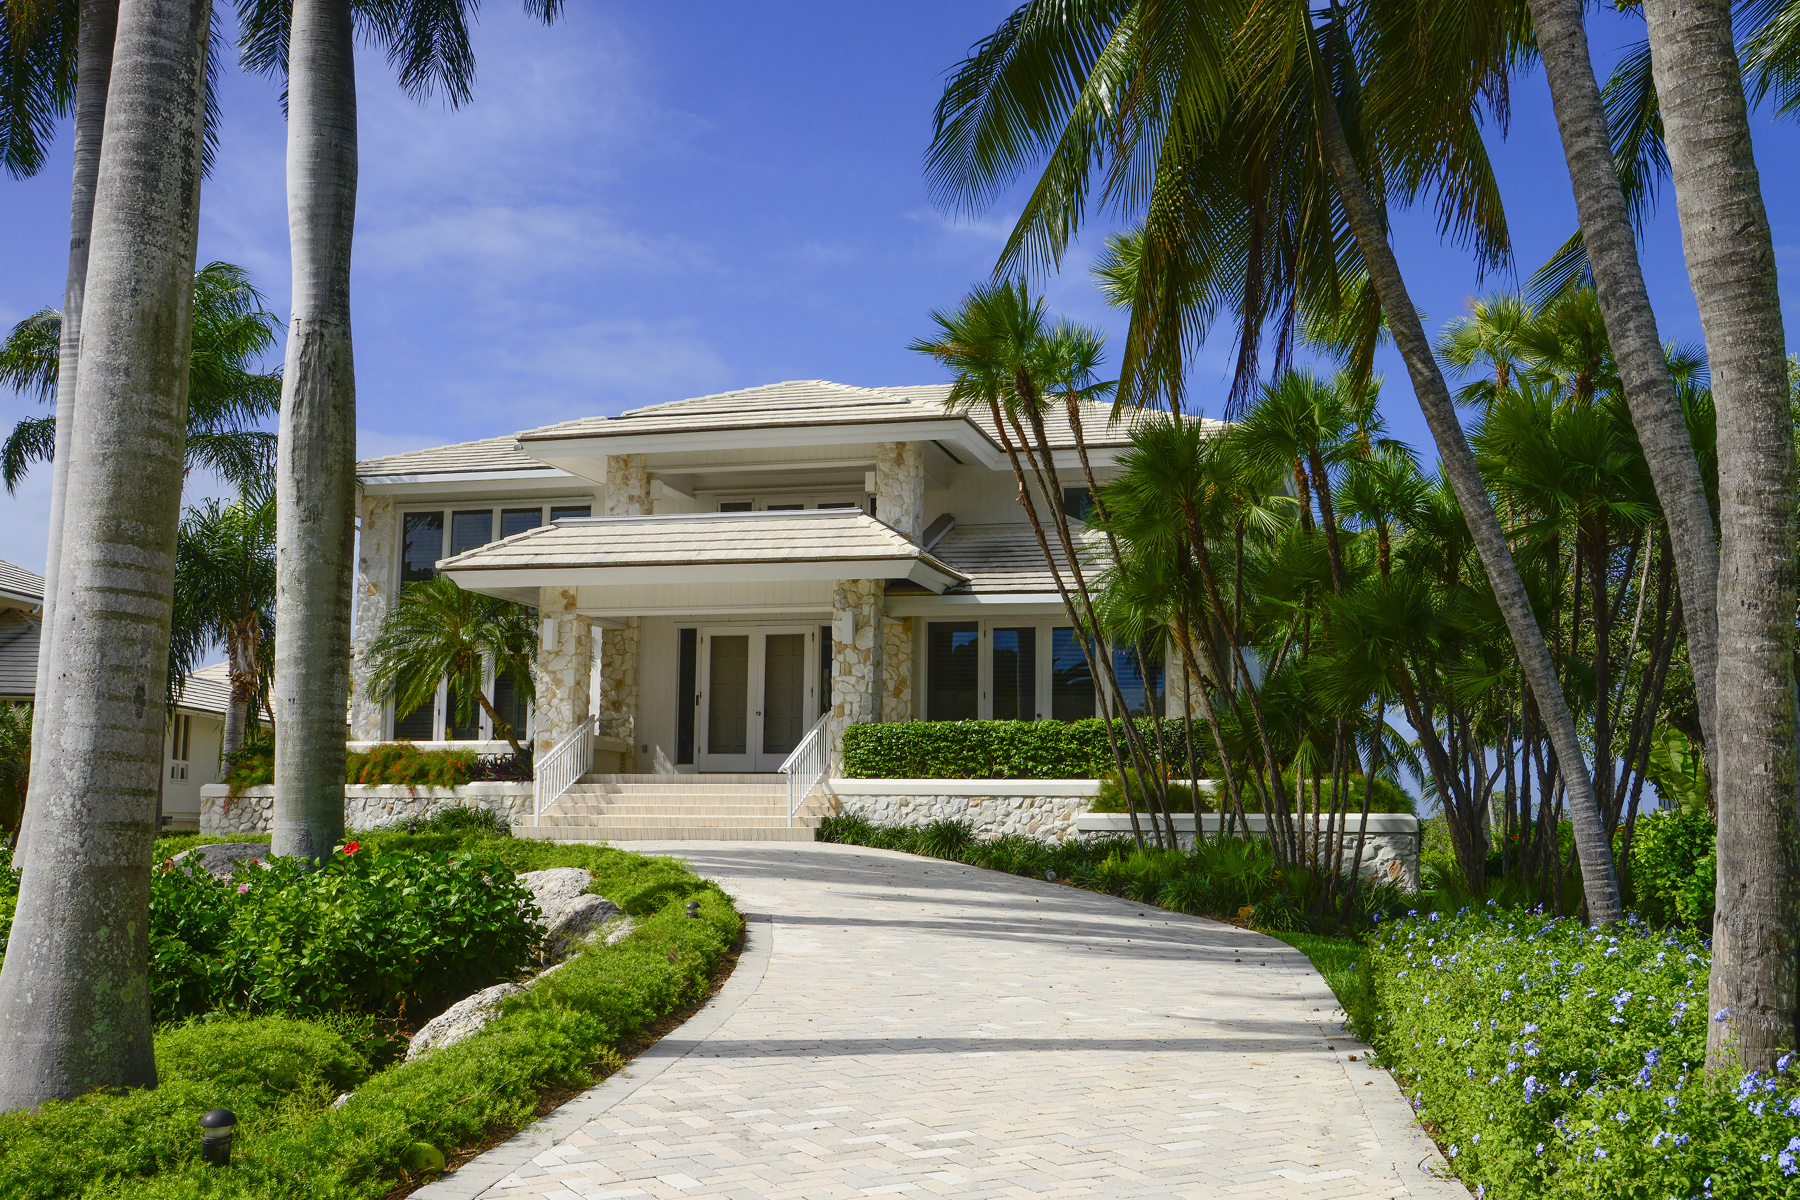 Villa per Vendita alle ore Prestigious Waterfront Living at Ocean Reef 13 Osprey Lane Ocean Reef Community, Key Largo, Florida, 33037 Stati Uniti